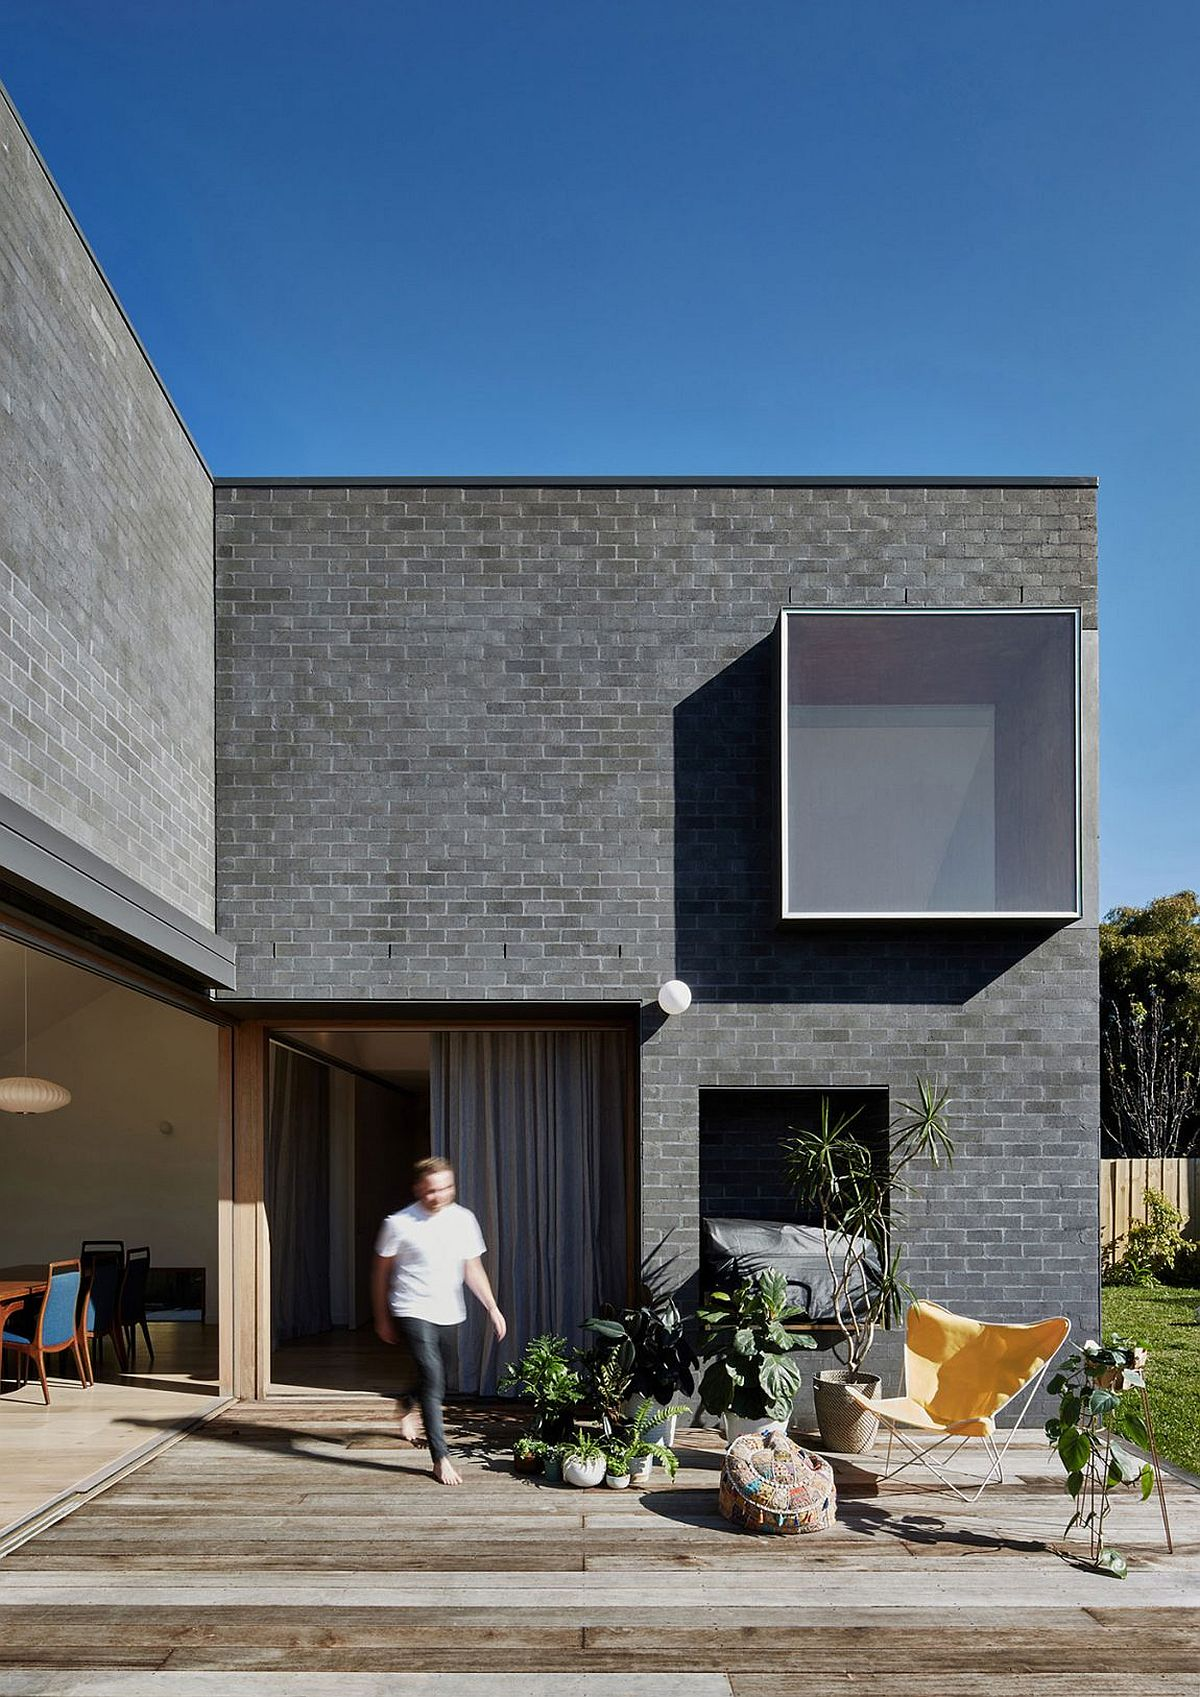 Gray brick exterior of the house gives it a modern appeal This Kid Friendly Family House Welcomes You with Bright, Open Spaces